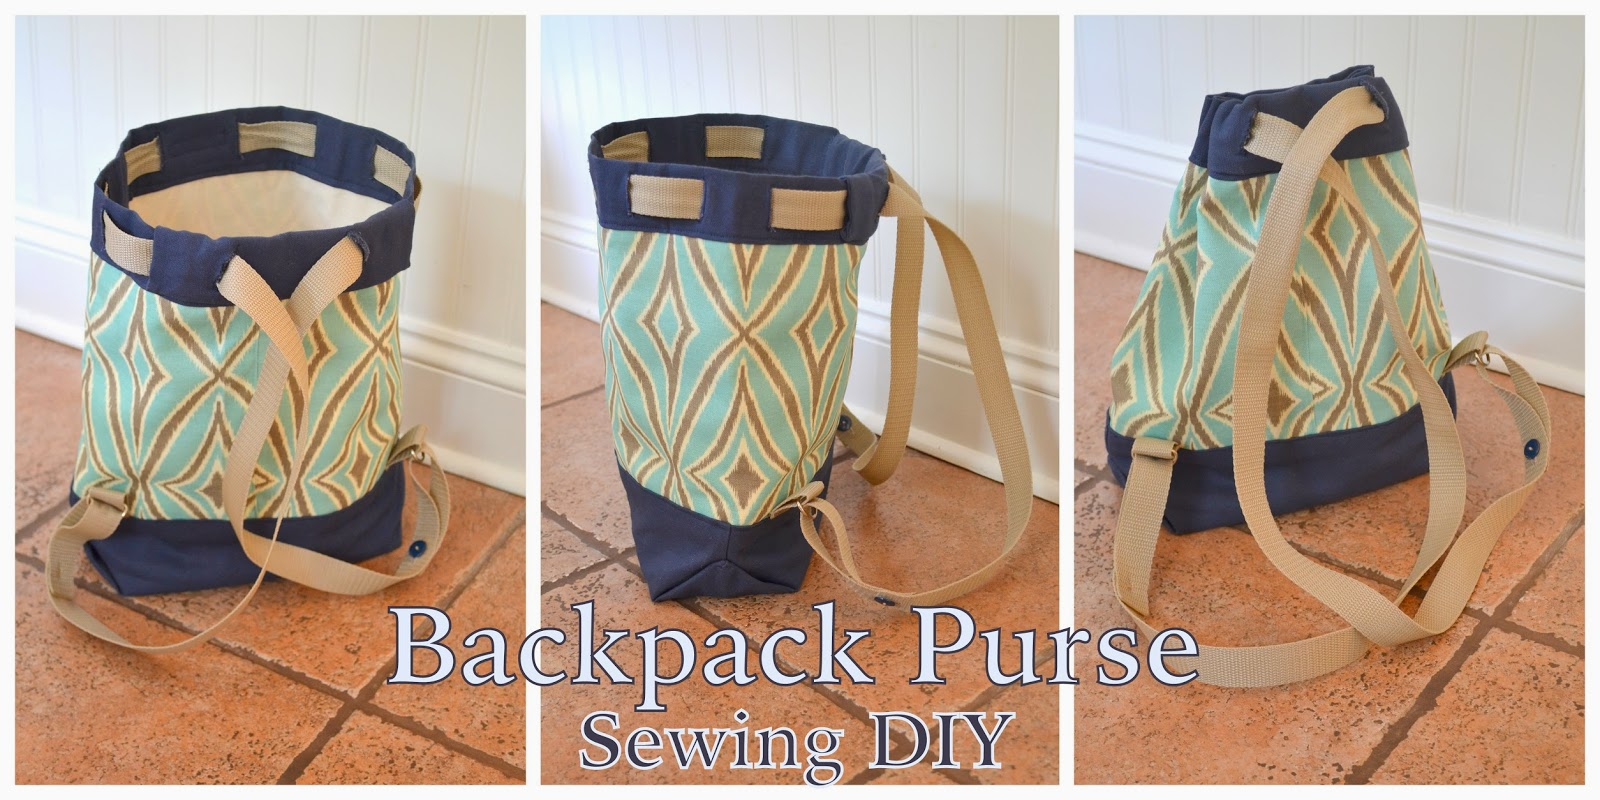 Diy backpack purse sewing a diaper bag purse logic laughter the purse in the below left is the borrowed purse from my mom the purse in the below right is the purse that i made i got a little excited and took jeuxipadfo Choice Image